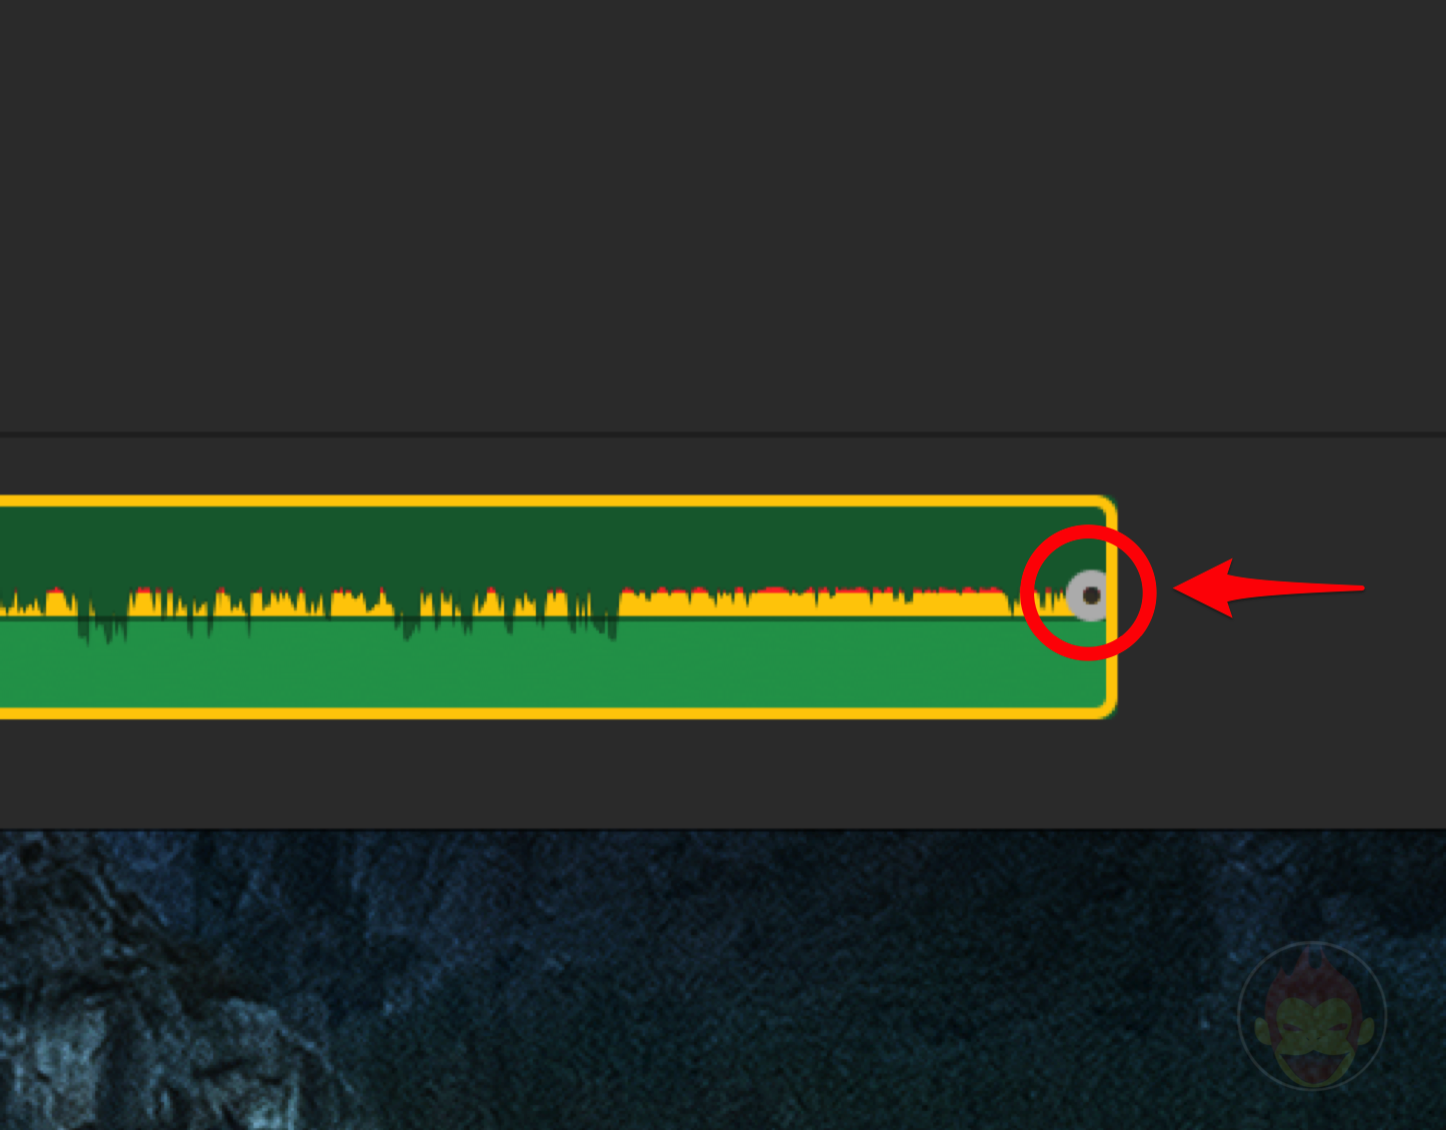 imovie-how-to-fade-out-music-02.png